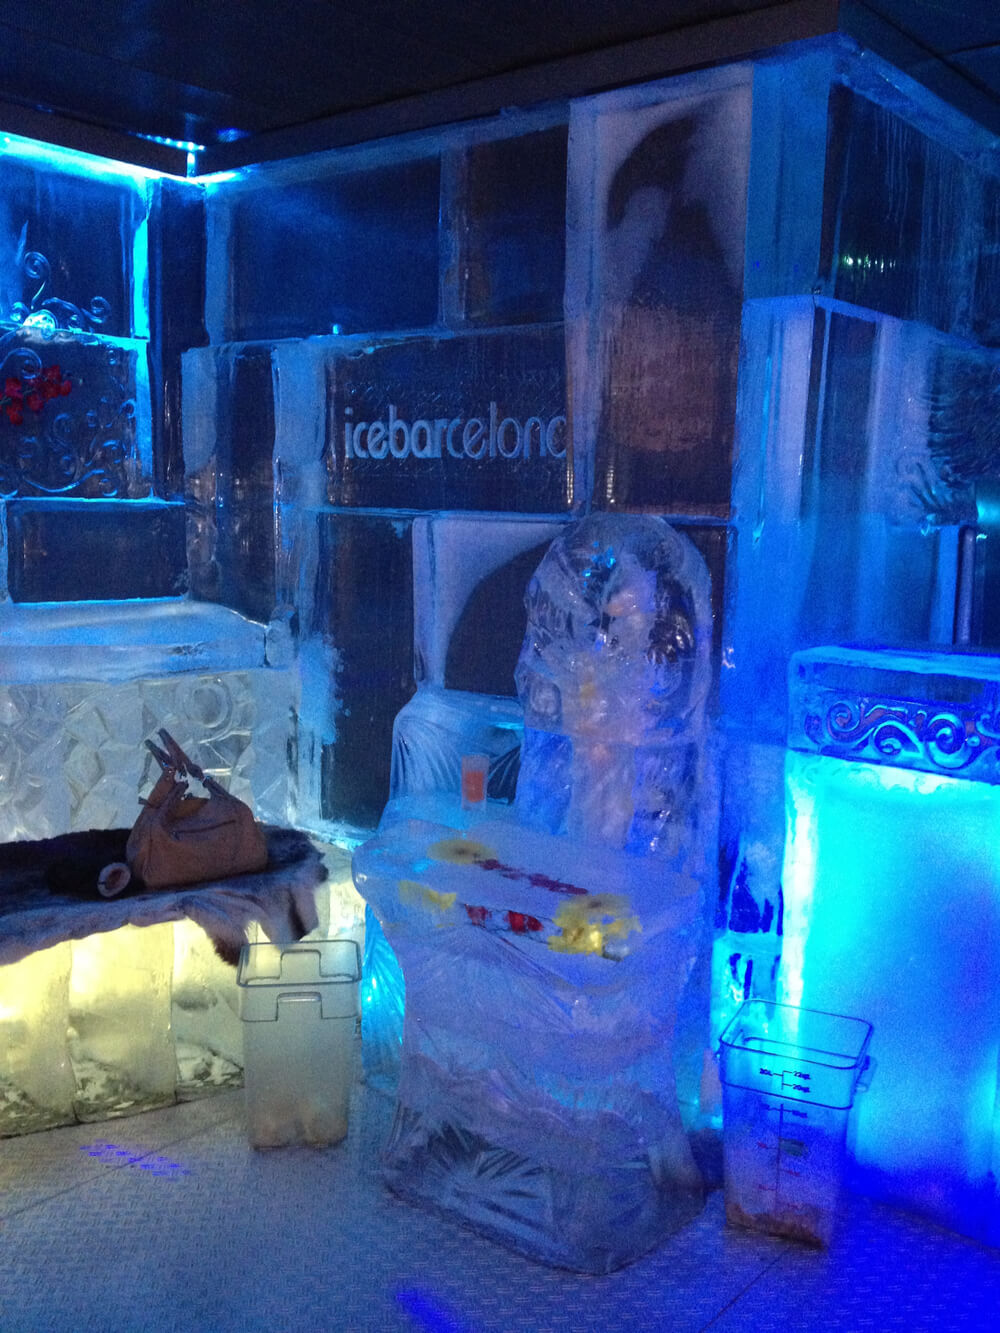 IceBarcelona, the world's first Ice bar at the beach; it is completely made of ice (walls, furnishing, bar) and kept at a temperature of -5°C